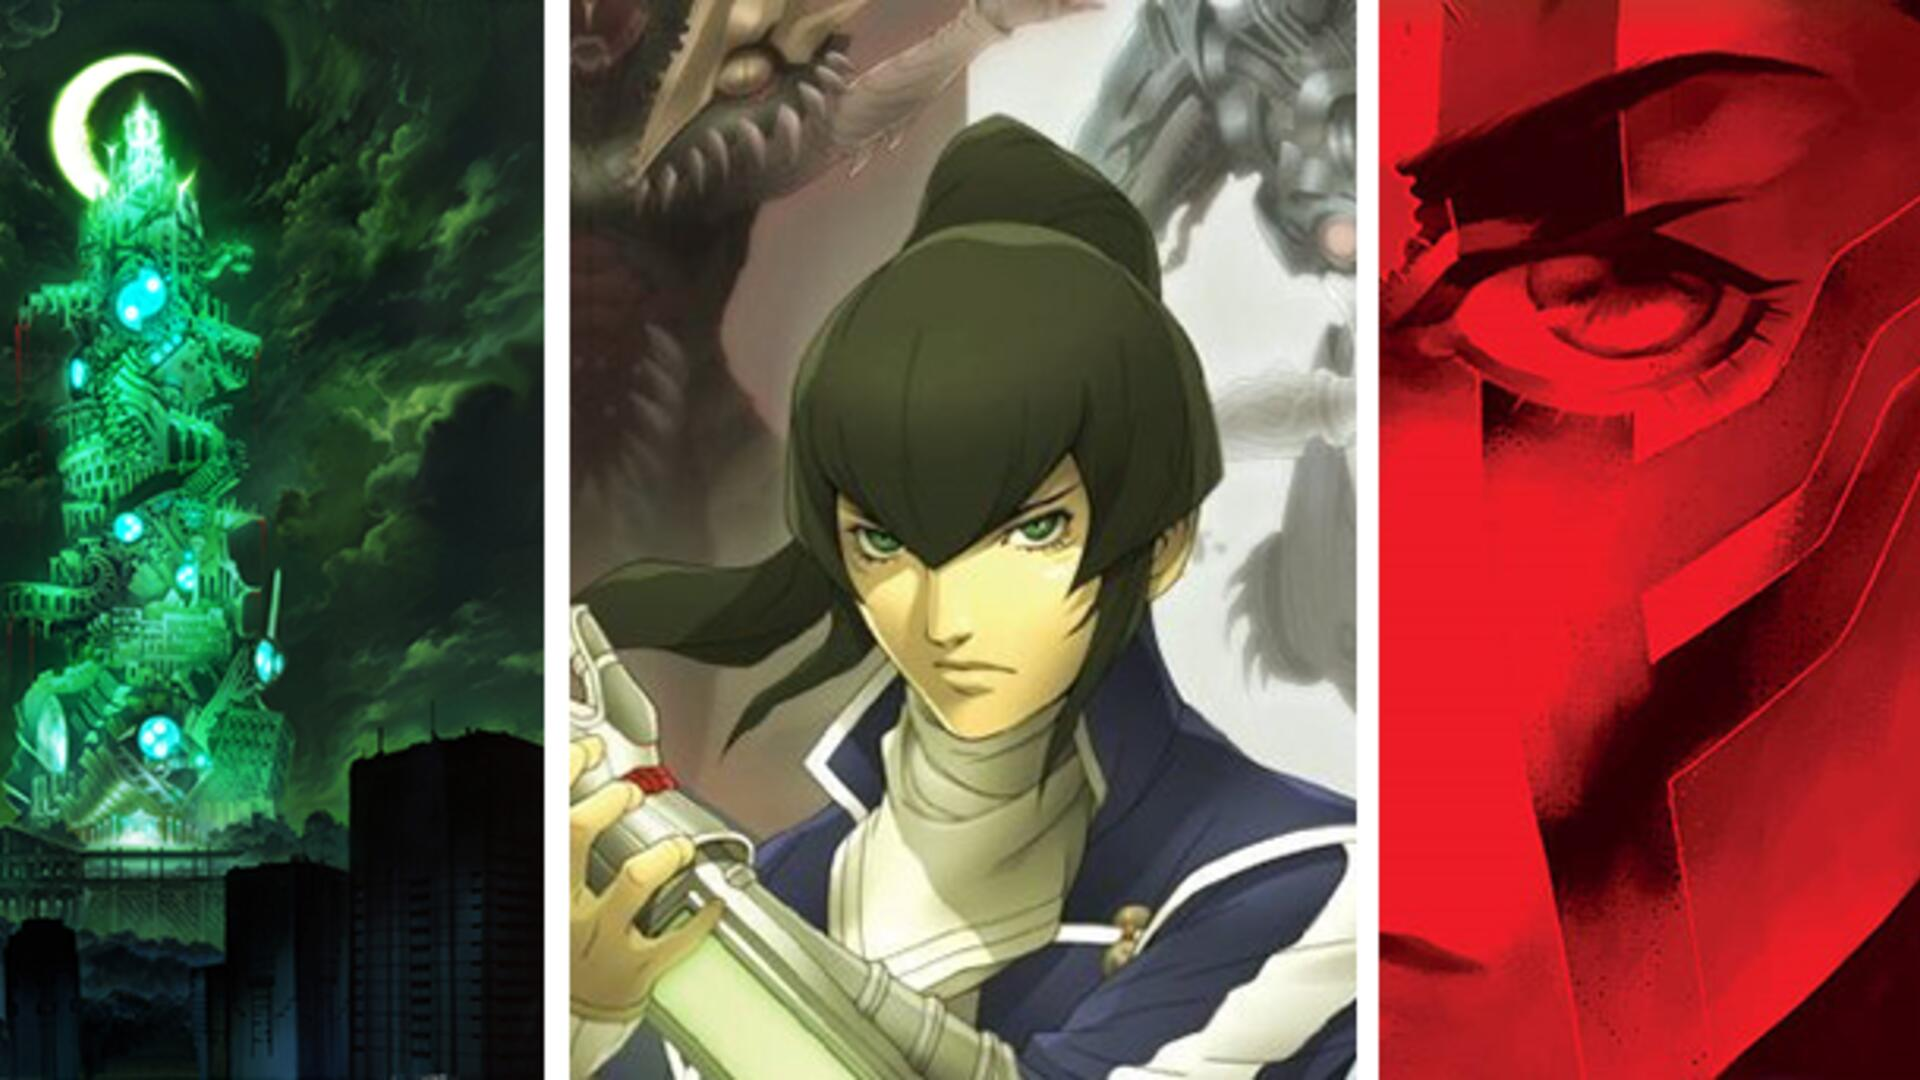 The Shin Megami Tensei Games You Should Play After Persona 5 | USgamer